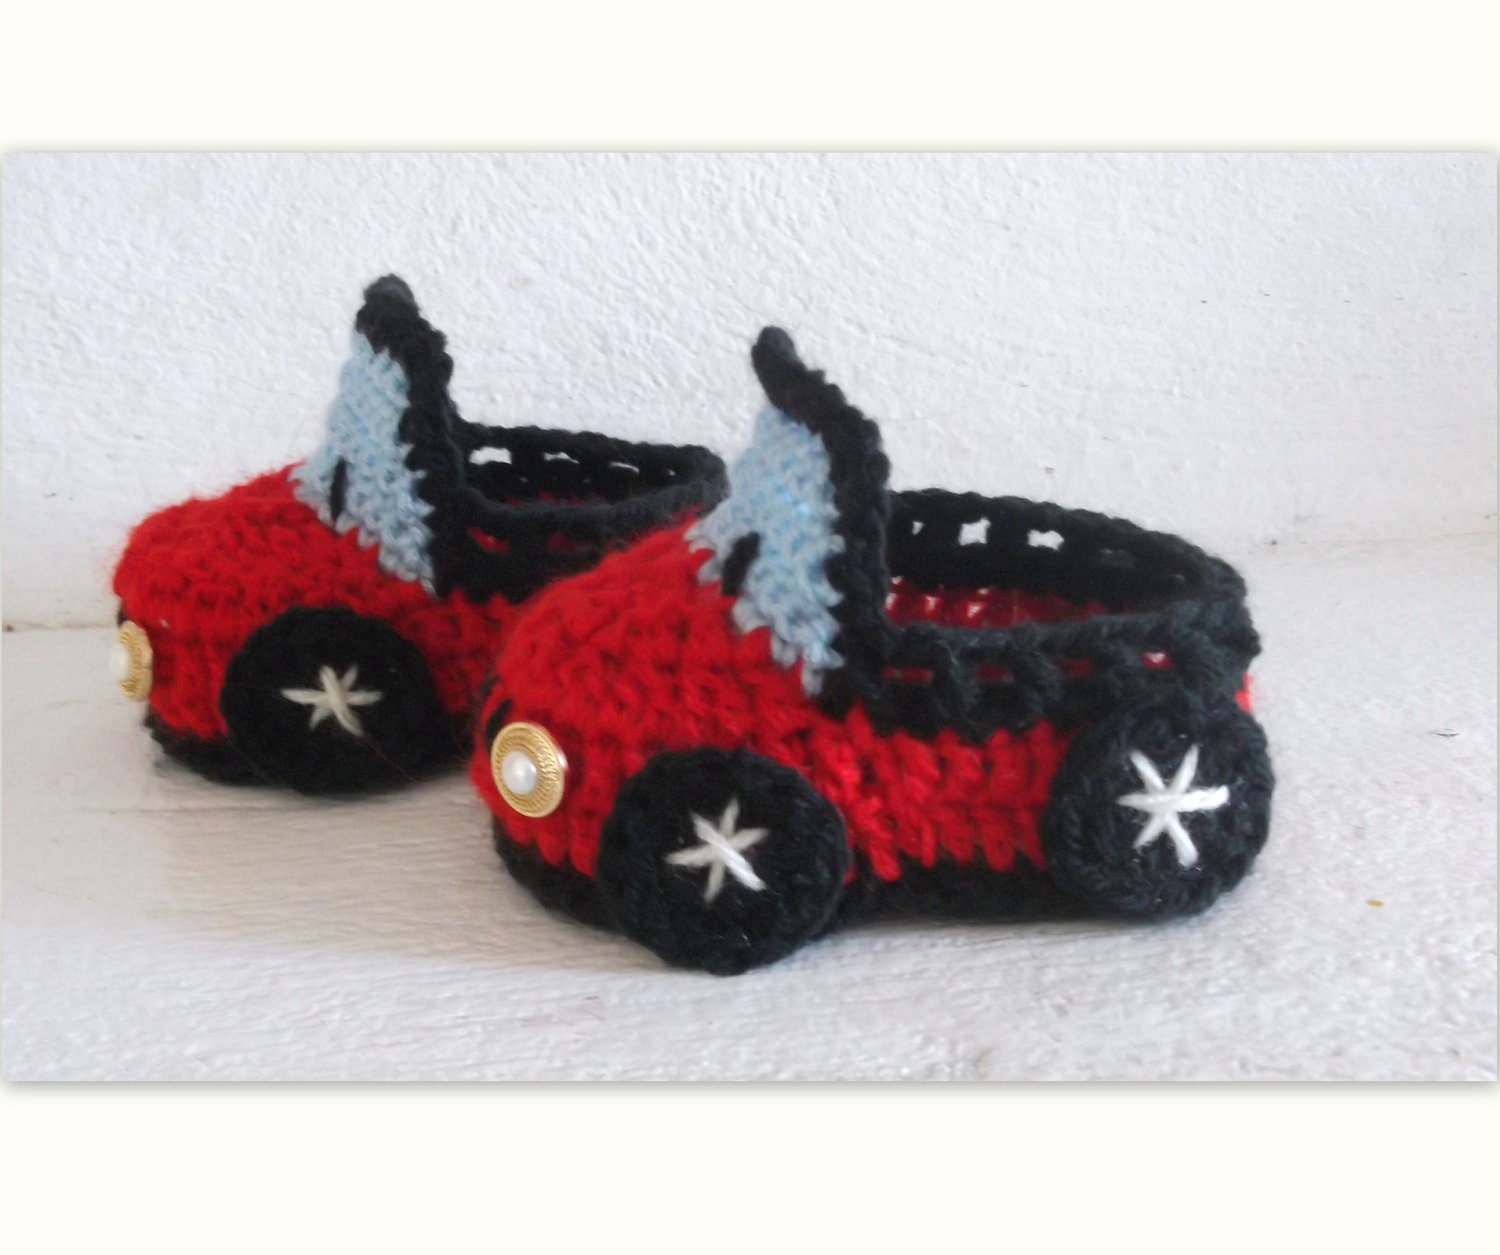 Baby Boy CROCHET PATTERN Booties Car, 4 sizes newborn to 12 month, (Pdf file)